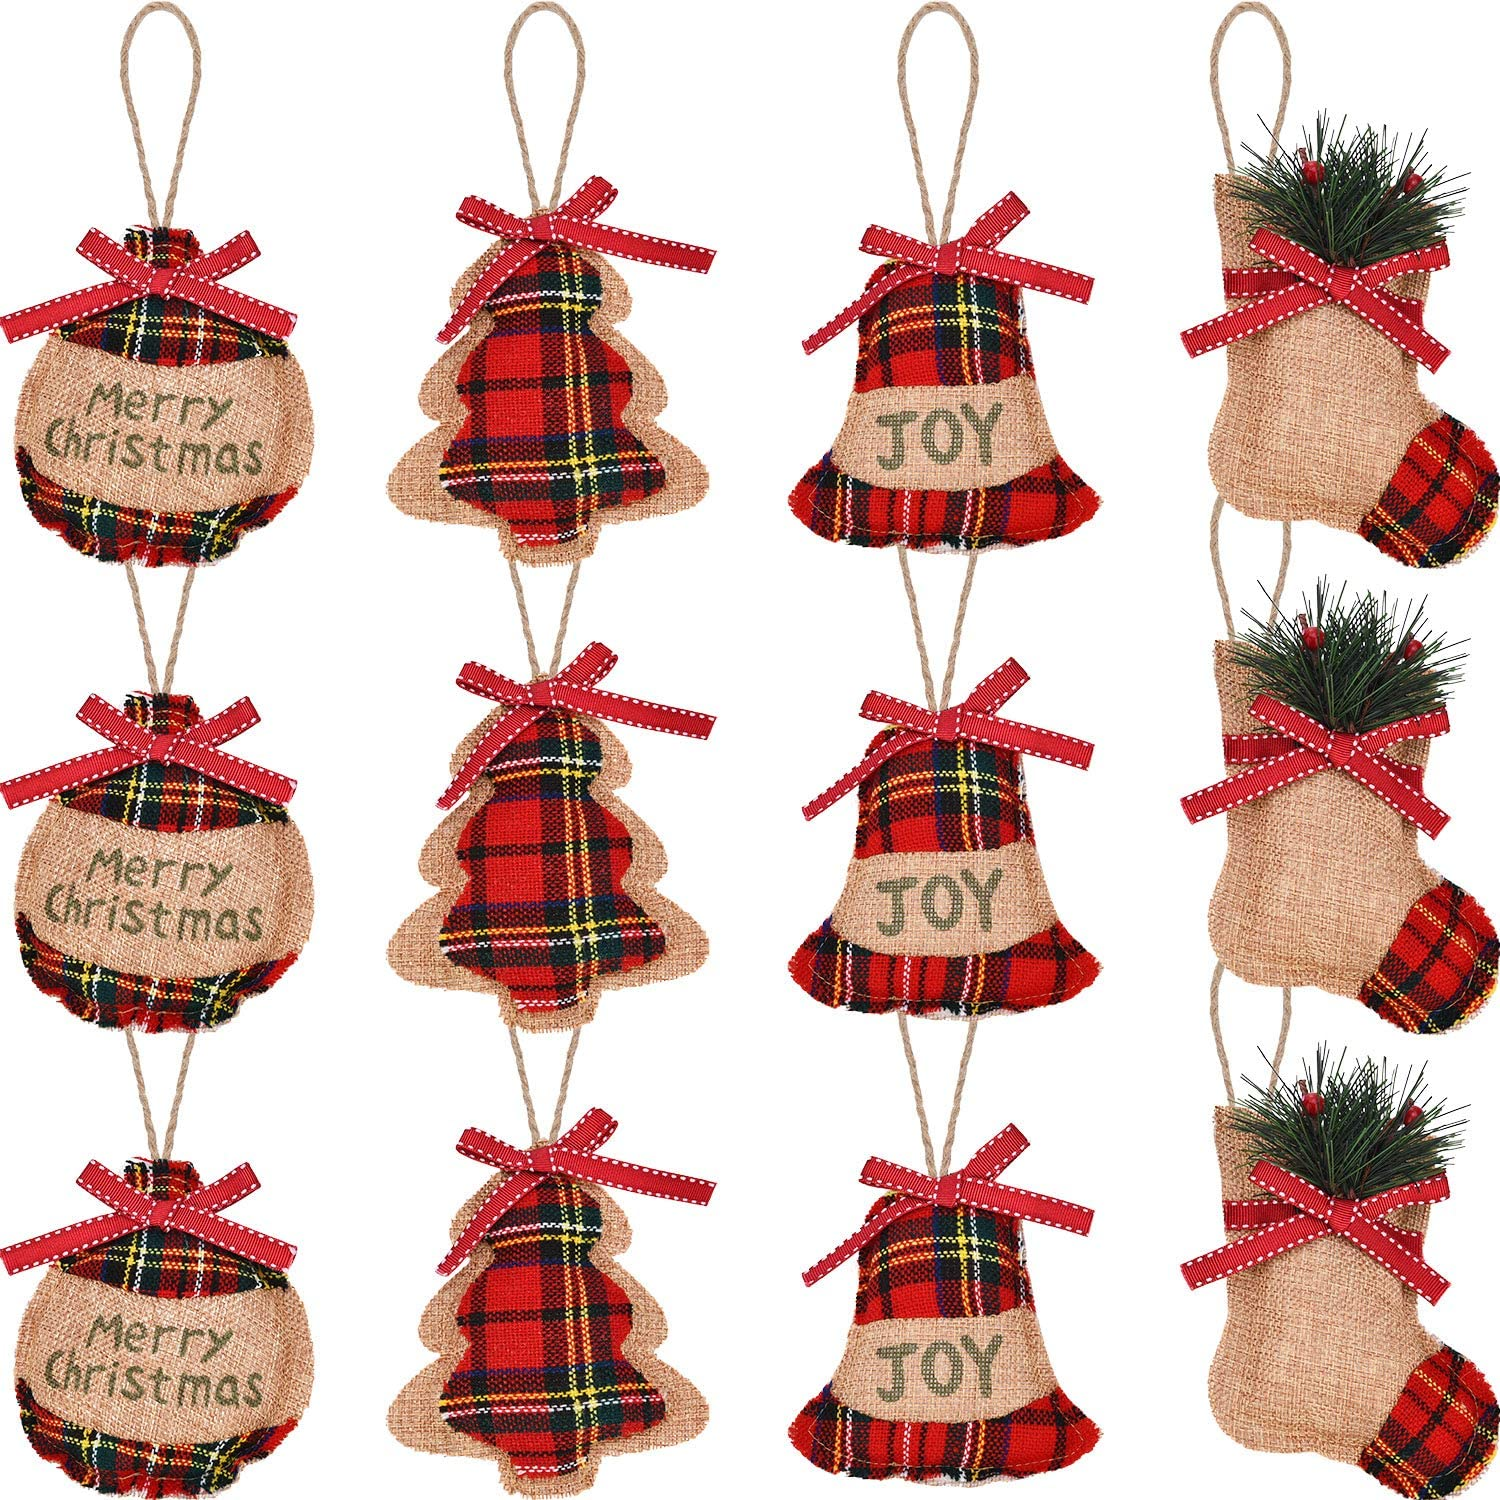 Jetec 12 Pieces Christmas Burlap Tree Ornaments Hanging Decorations Christmas Stocking Tree Ball Shaped Decor for Christmas Party, 4 Styles (Color 1)